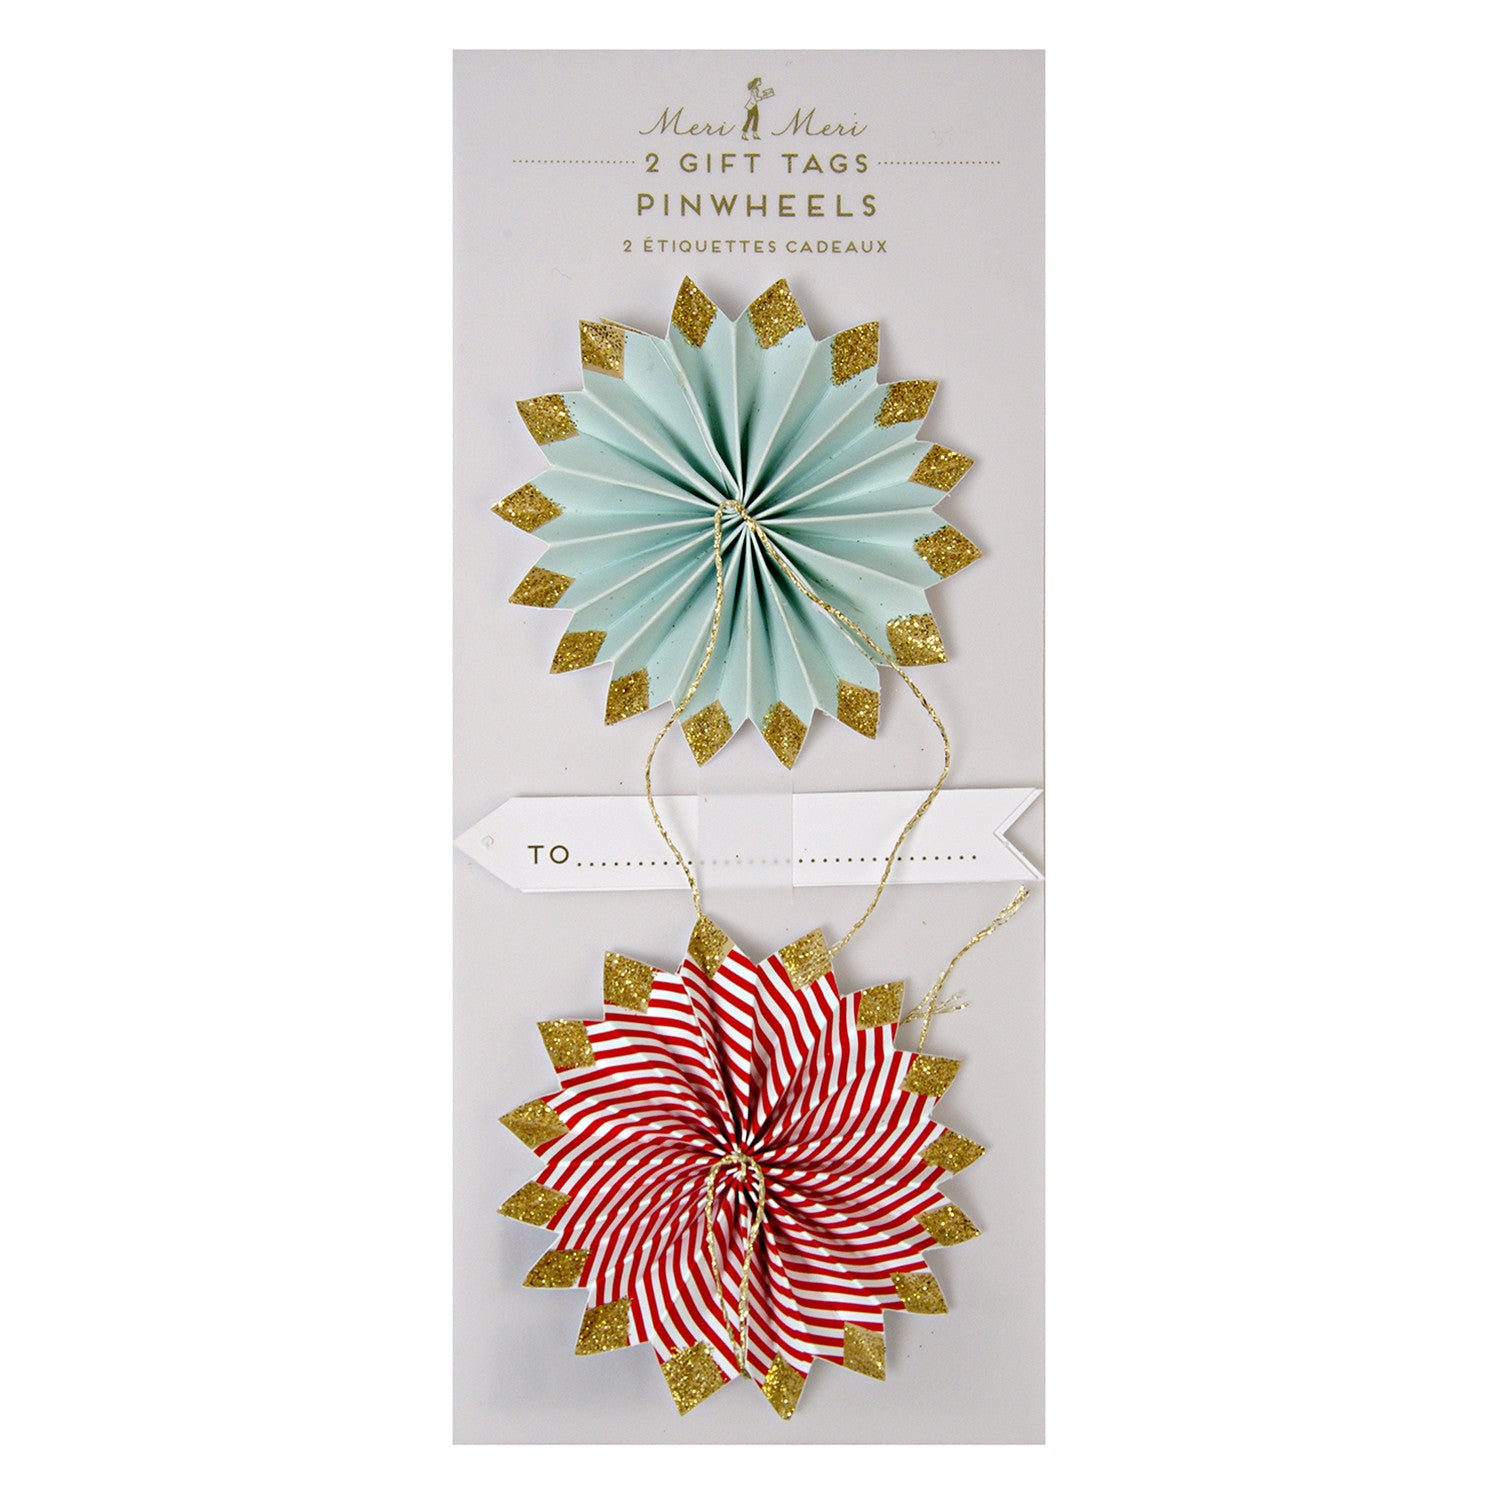 Pinwheel Gift Tags Meri Meri - Little Citizens Boutique  - 1